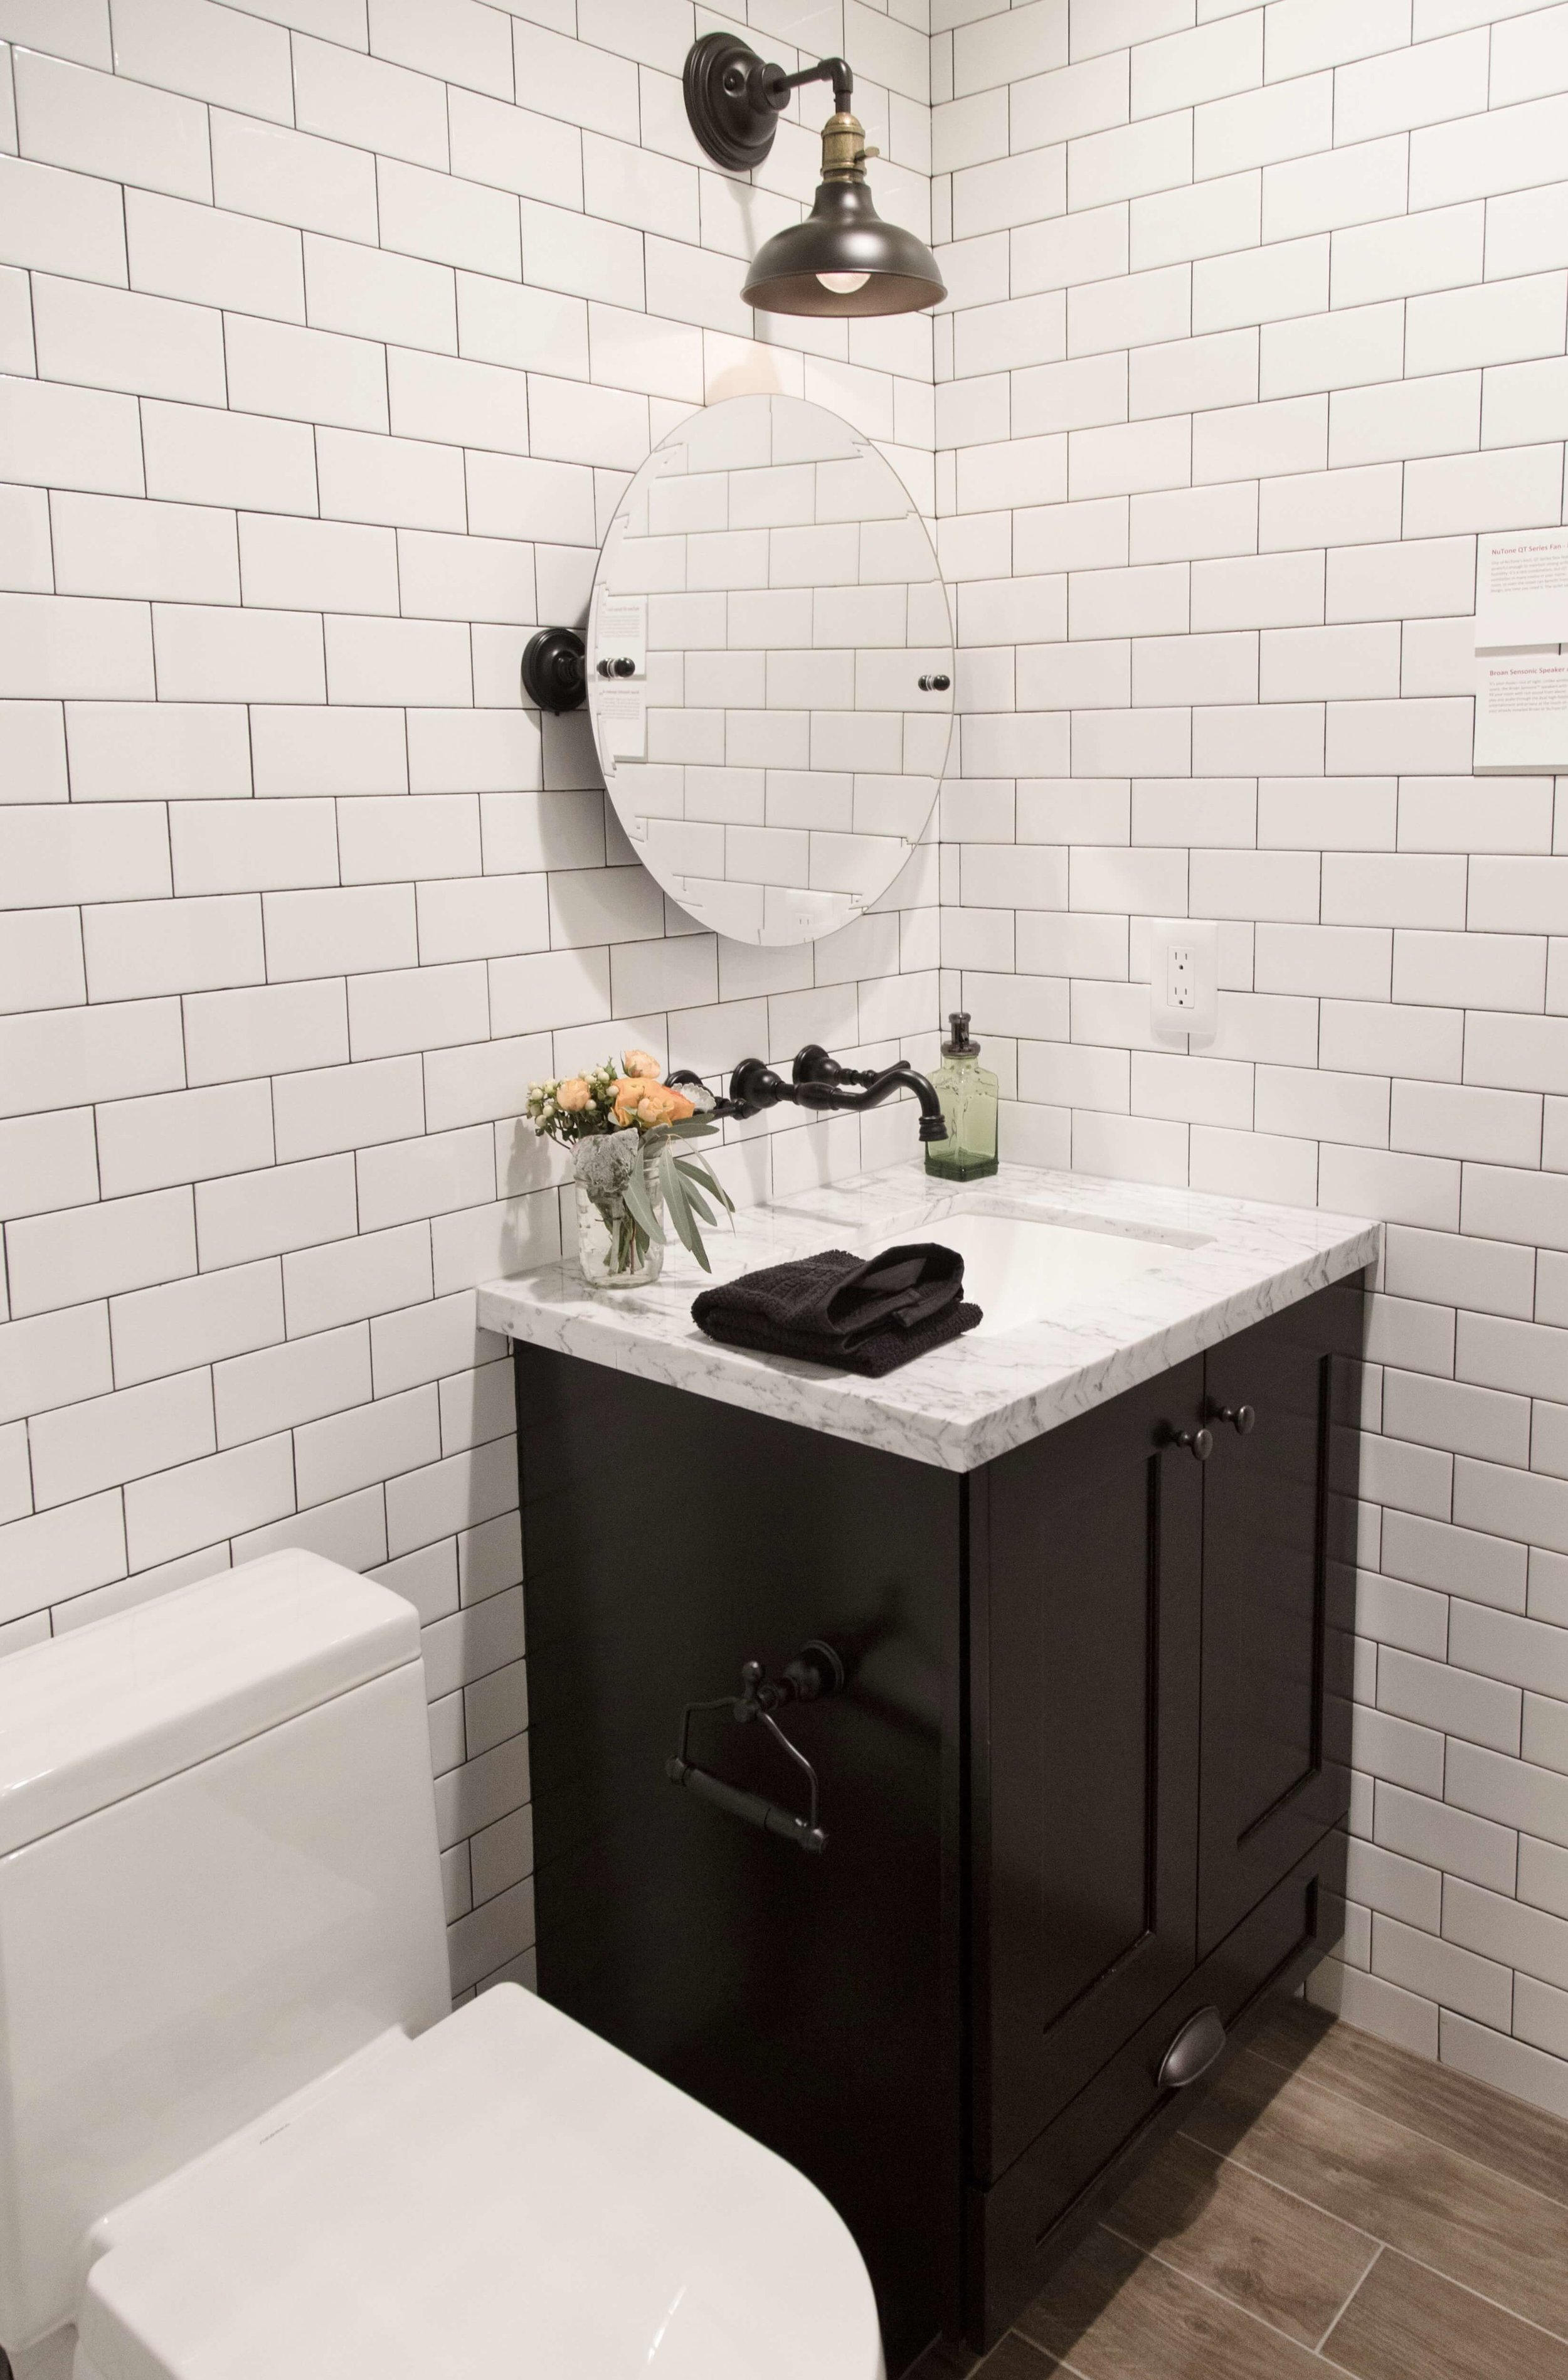 Black faucets in white tiled bathroom | Designer: Bobby Berk, Pardee Homes